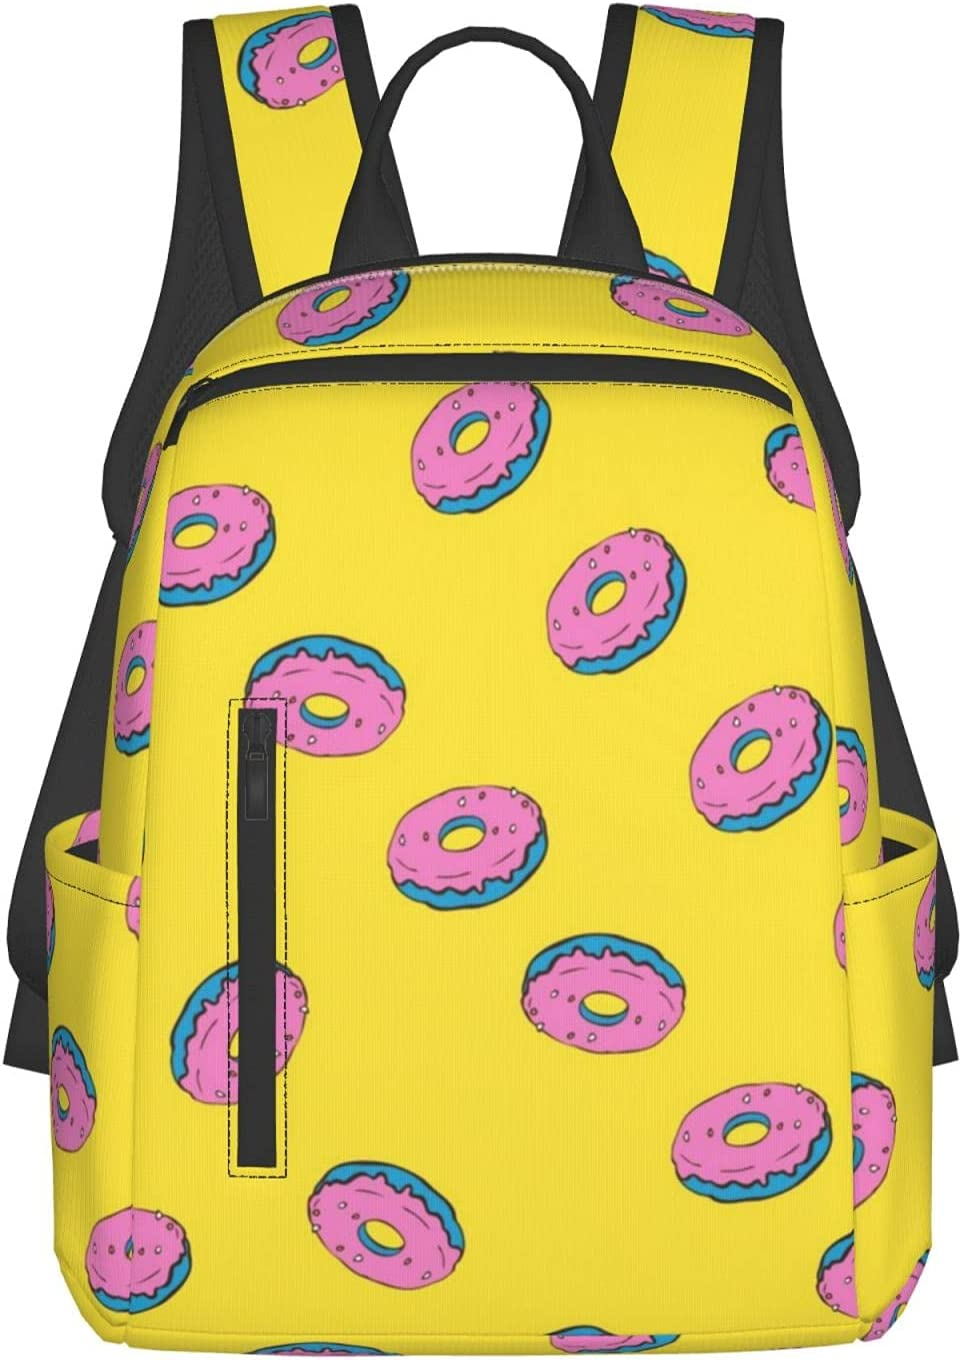 Lightweight School Backpack for Men Donut Ye Teens Cartoon Manufacturer Bombing free shipping direct delivery Women